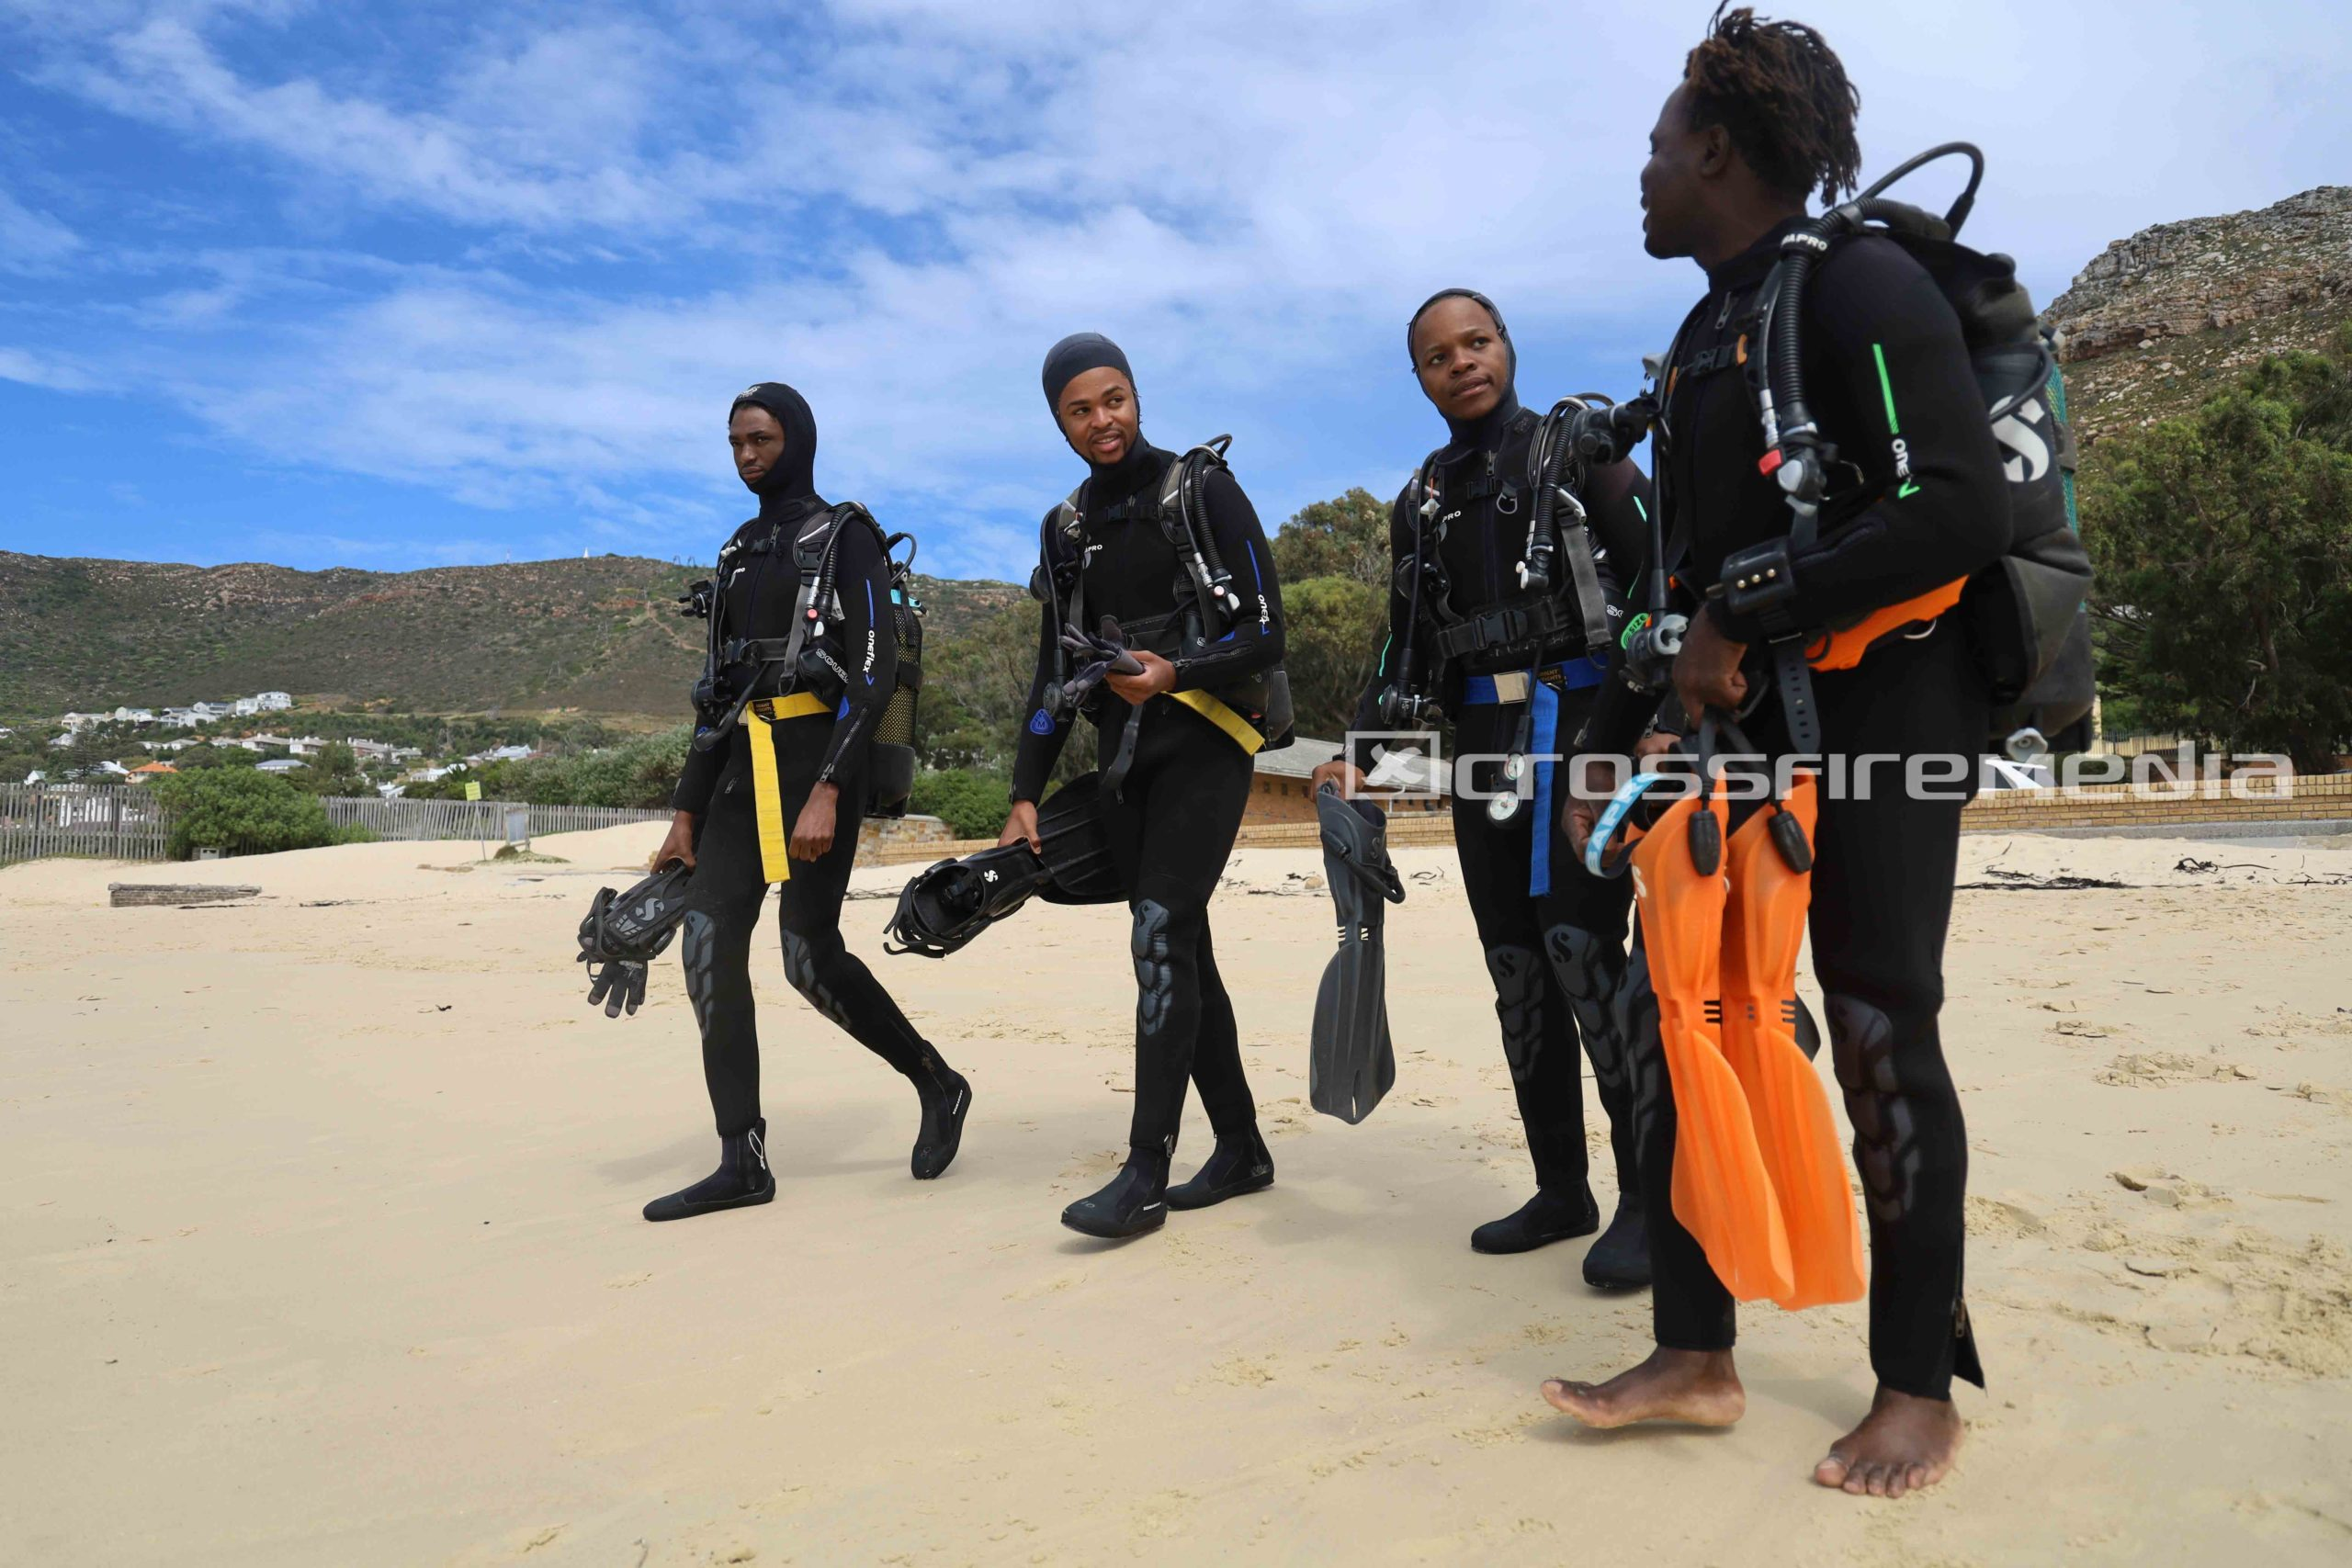 product image of scuba divers in scuba gear on beach